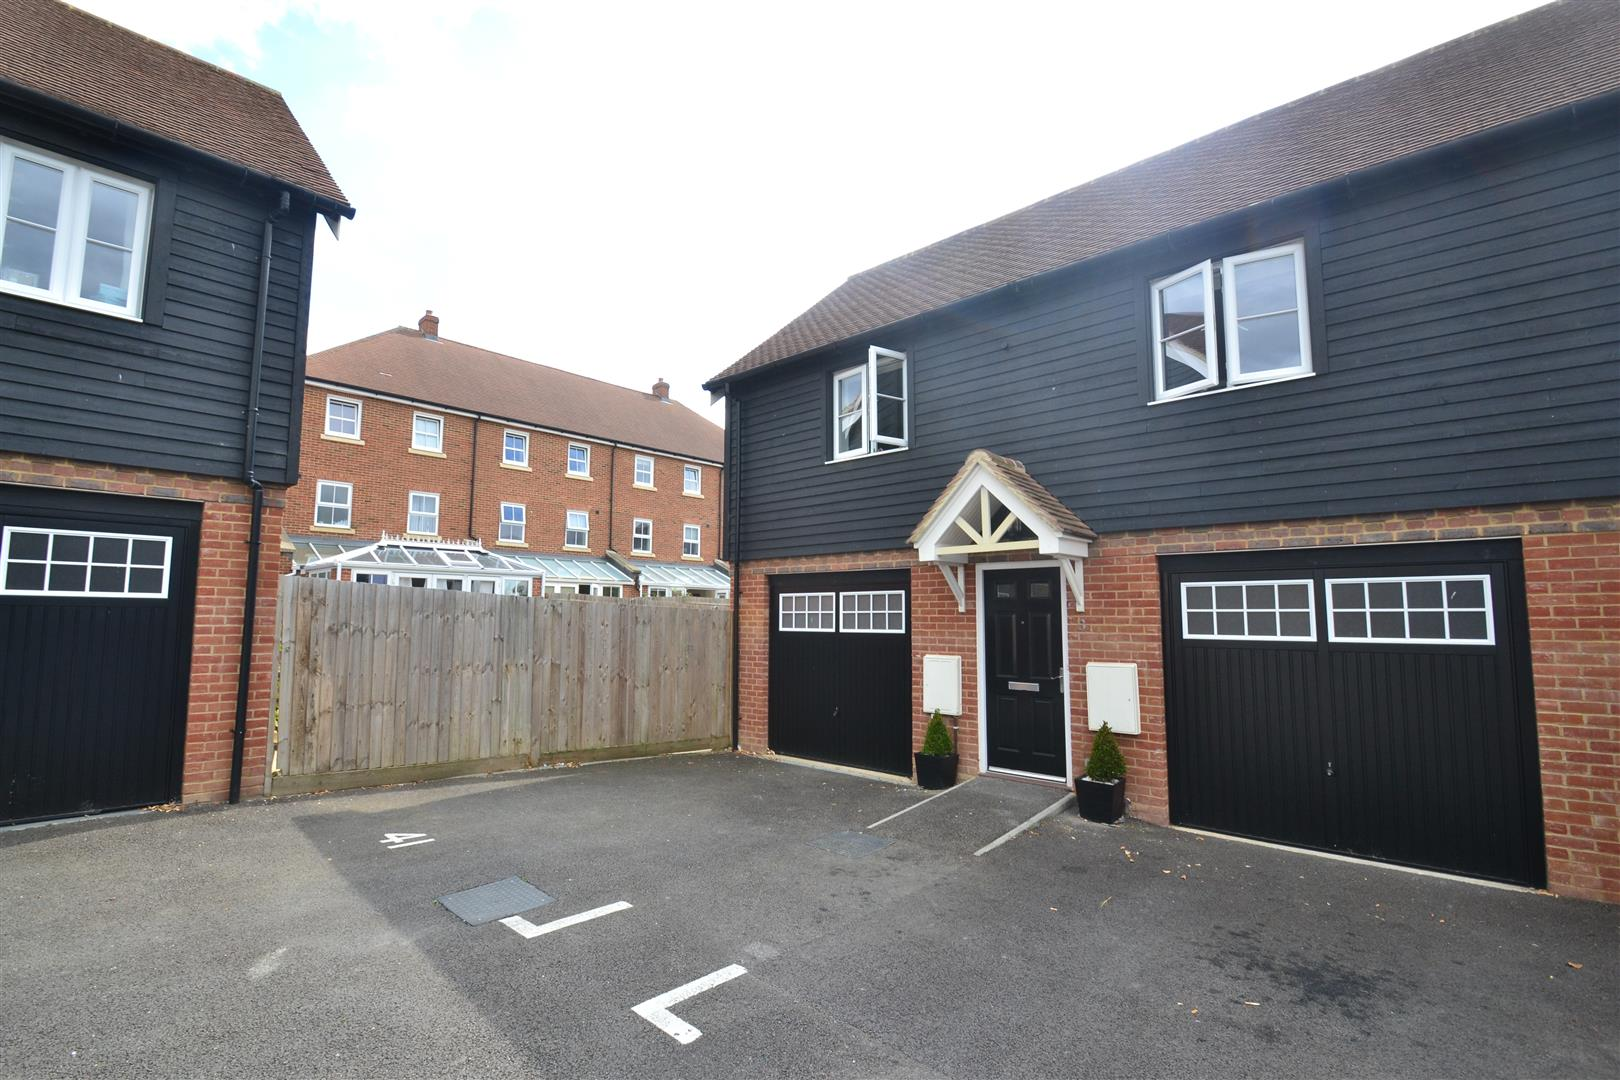 2 Bedrooms House for sale in Meadow Way, Horley